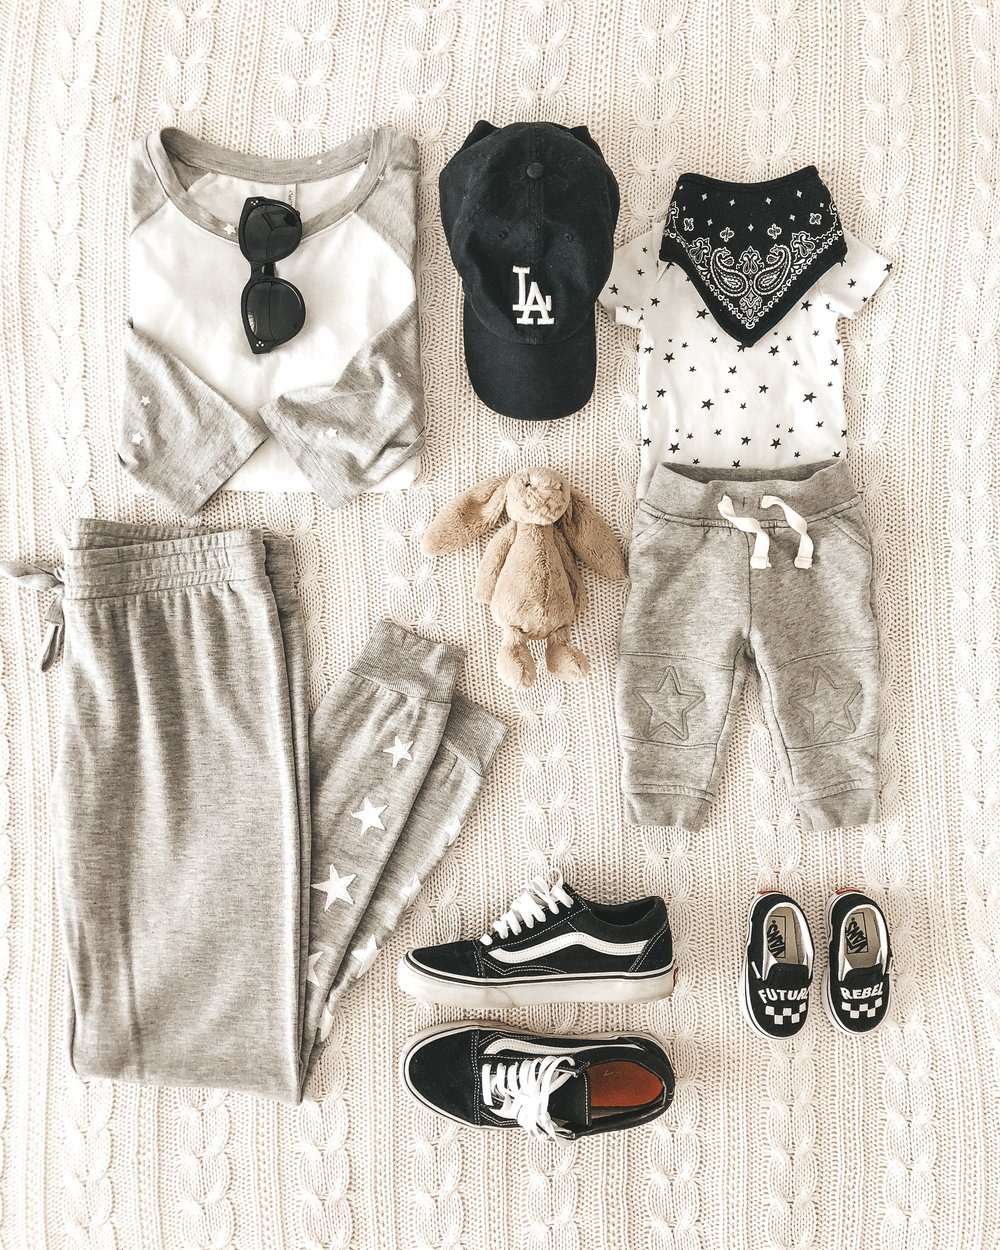 Mommy and me outfits. Monochrome outfits for baby and mom.